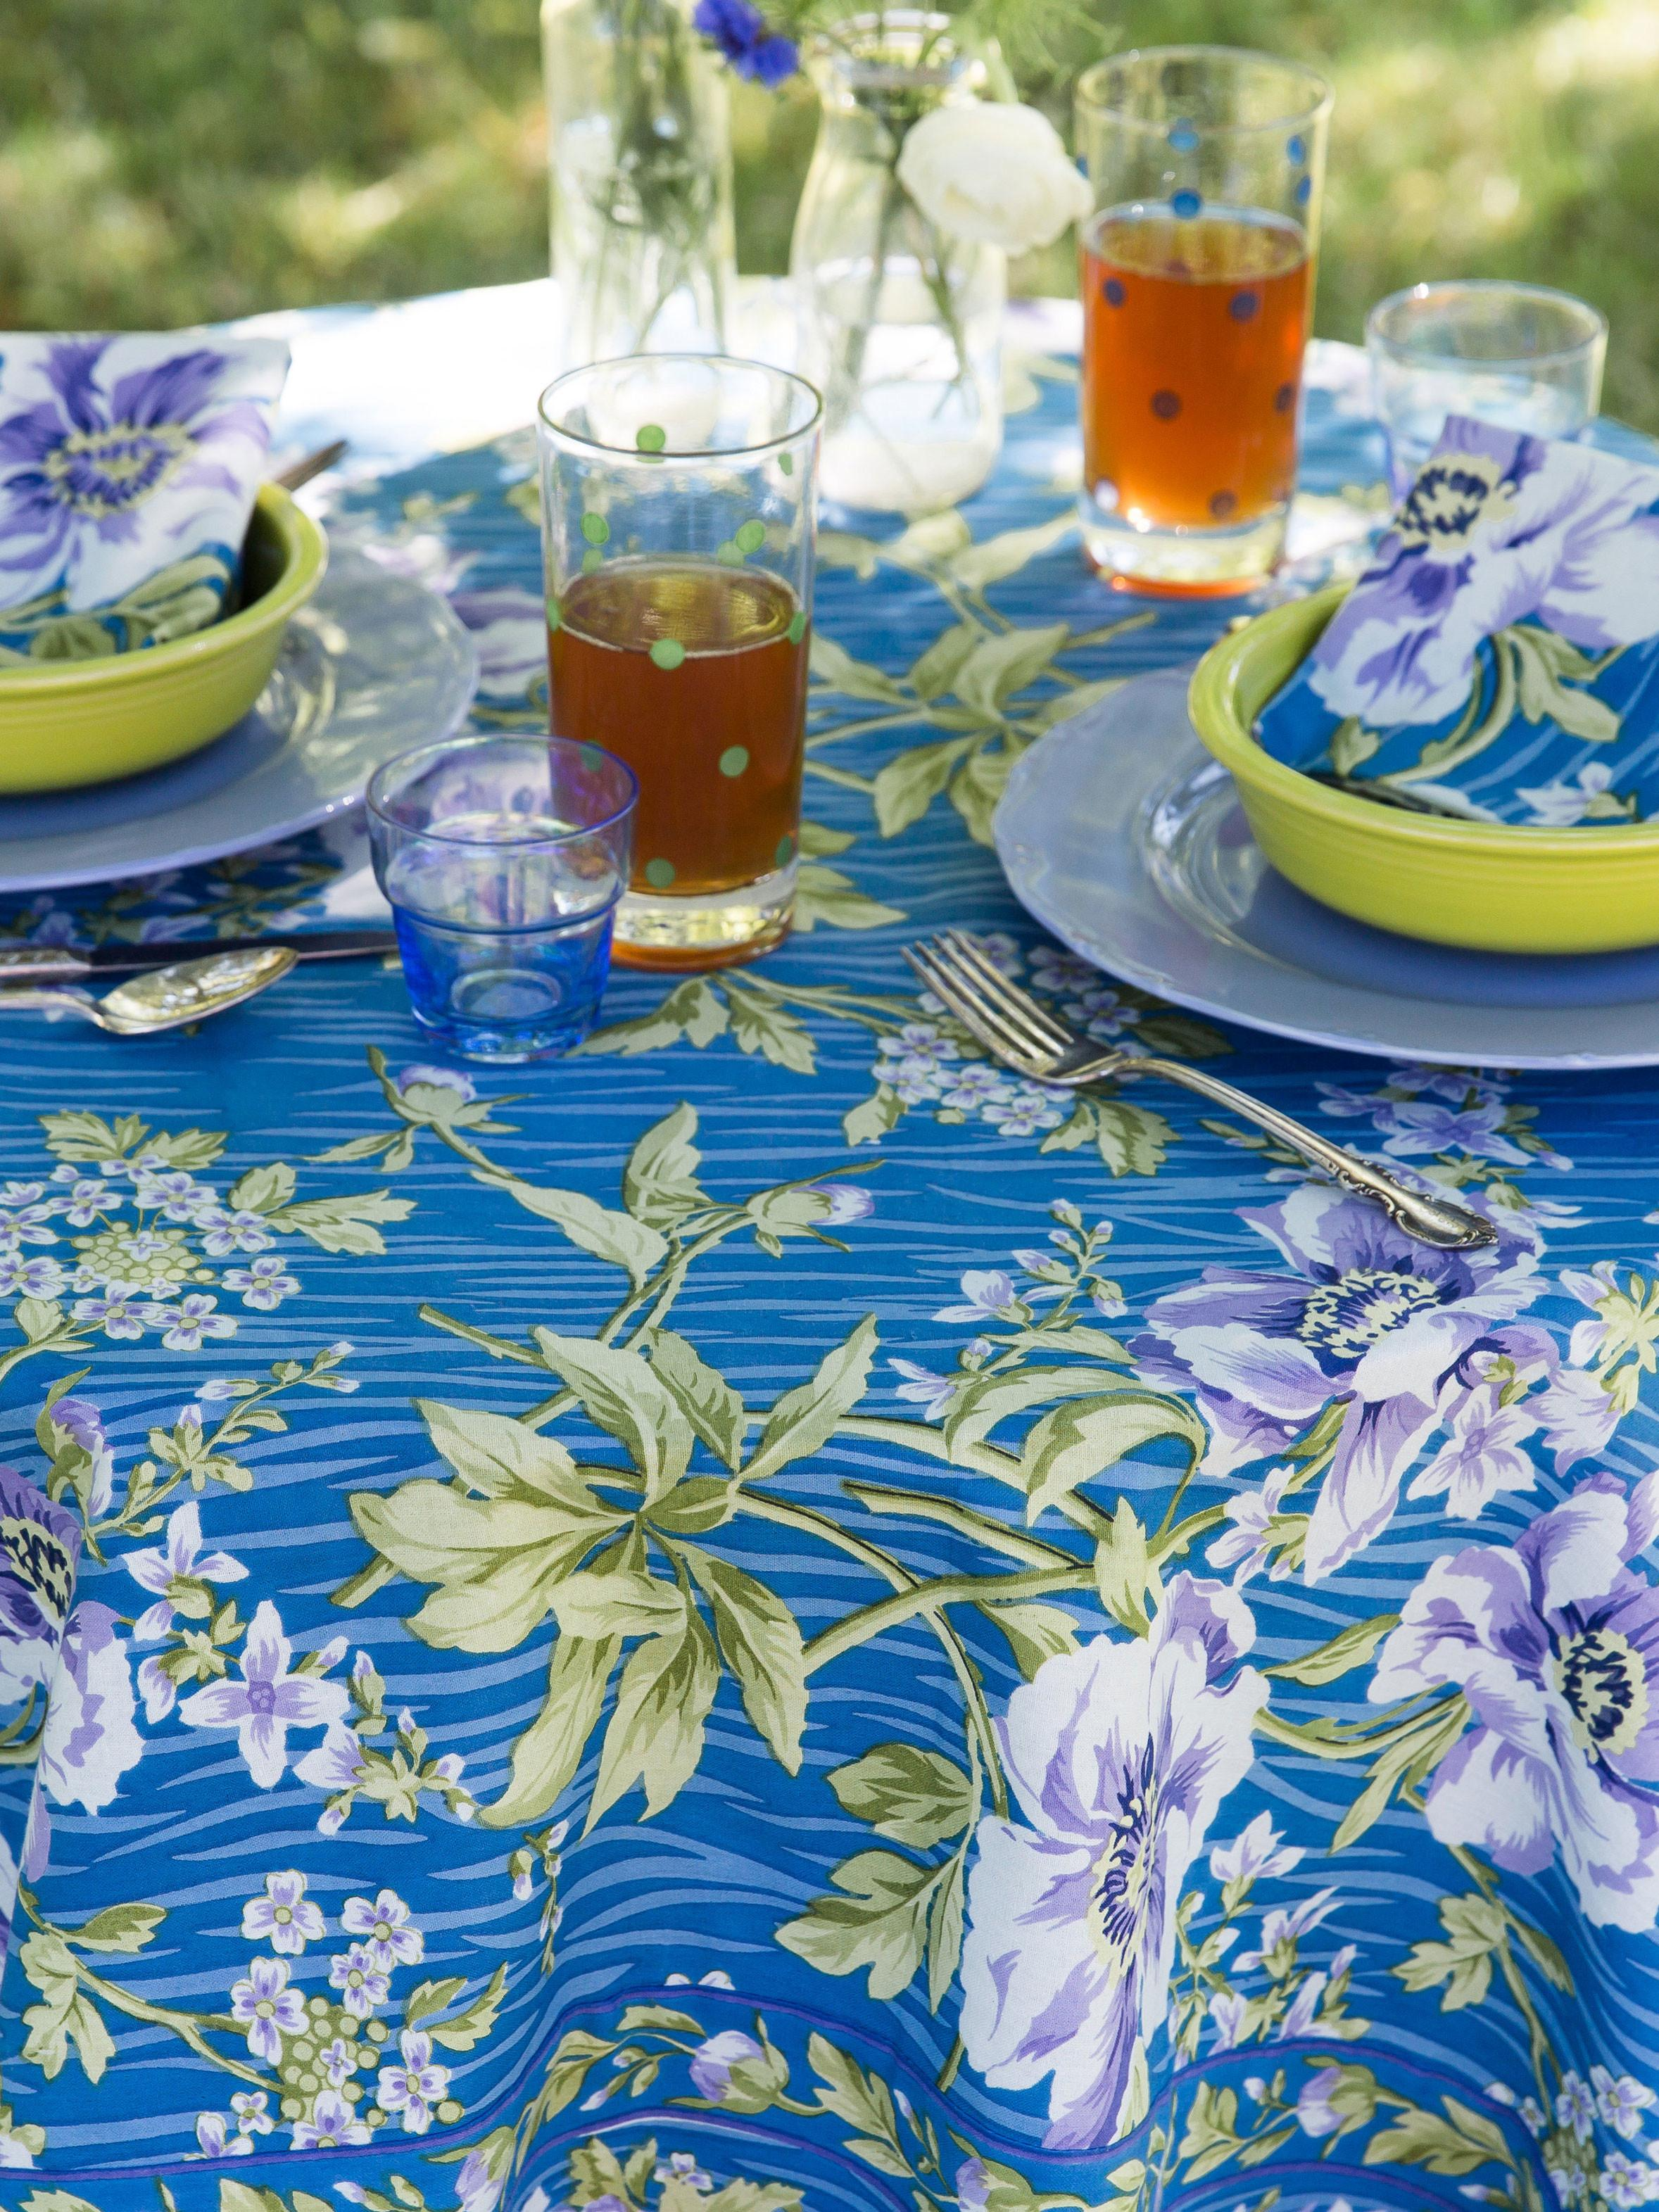 Water Lily Tablecloth Linens Kitchen Tablecloths